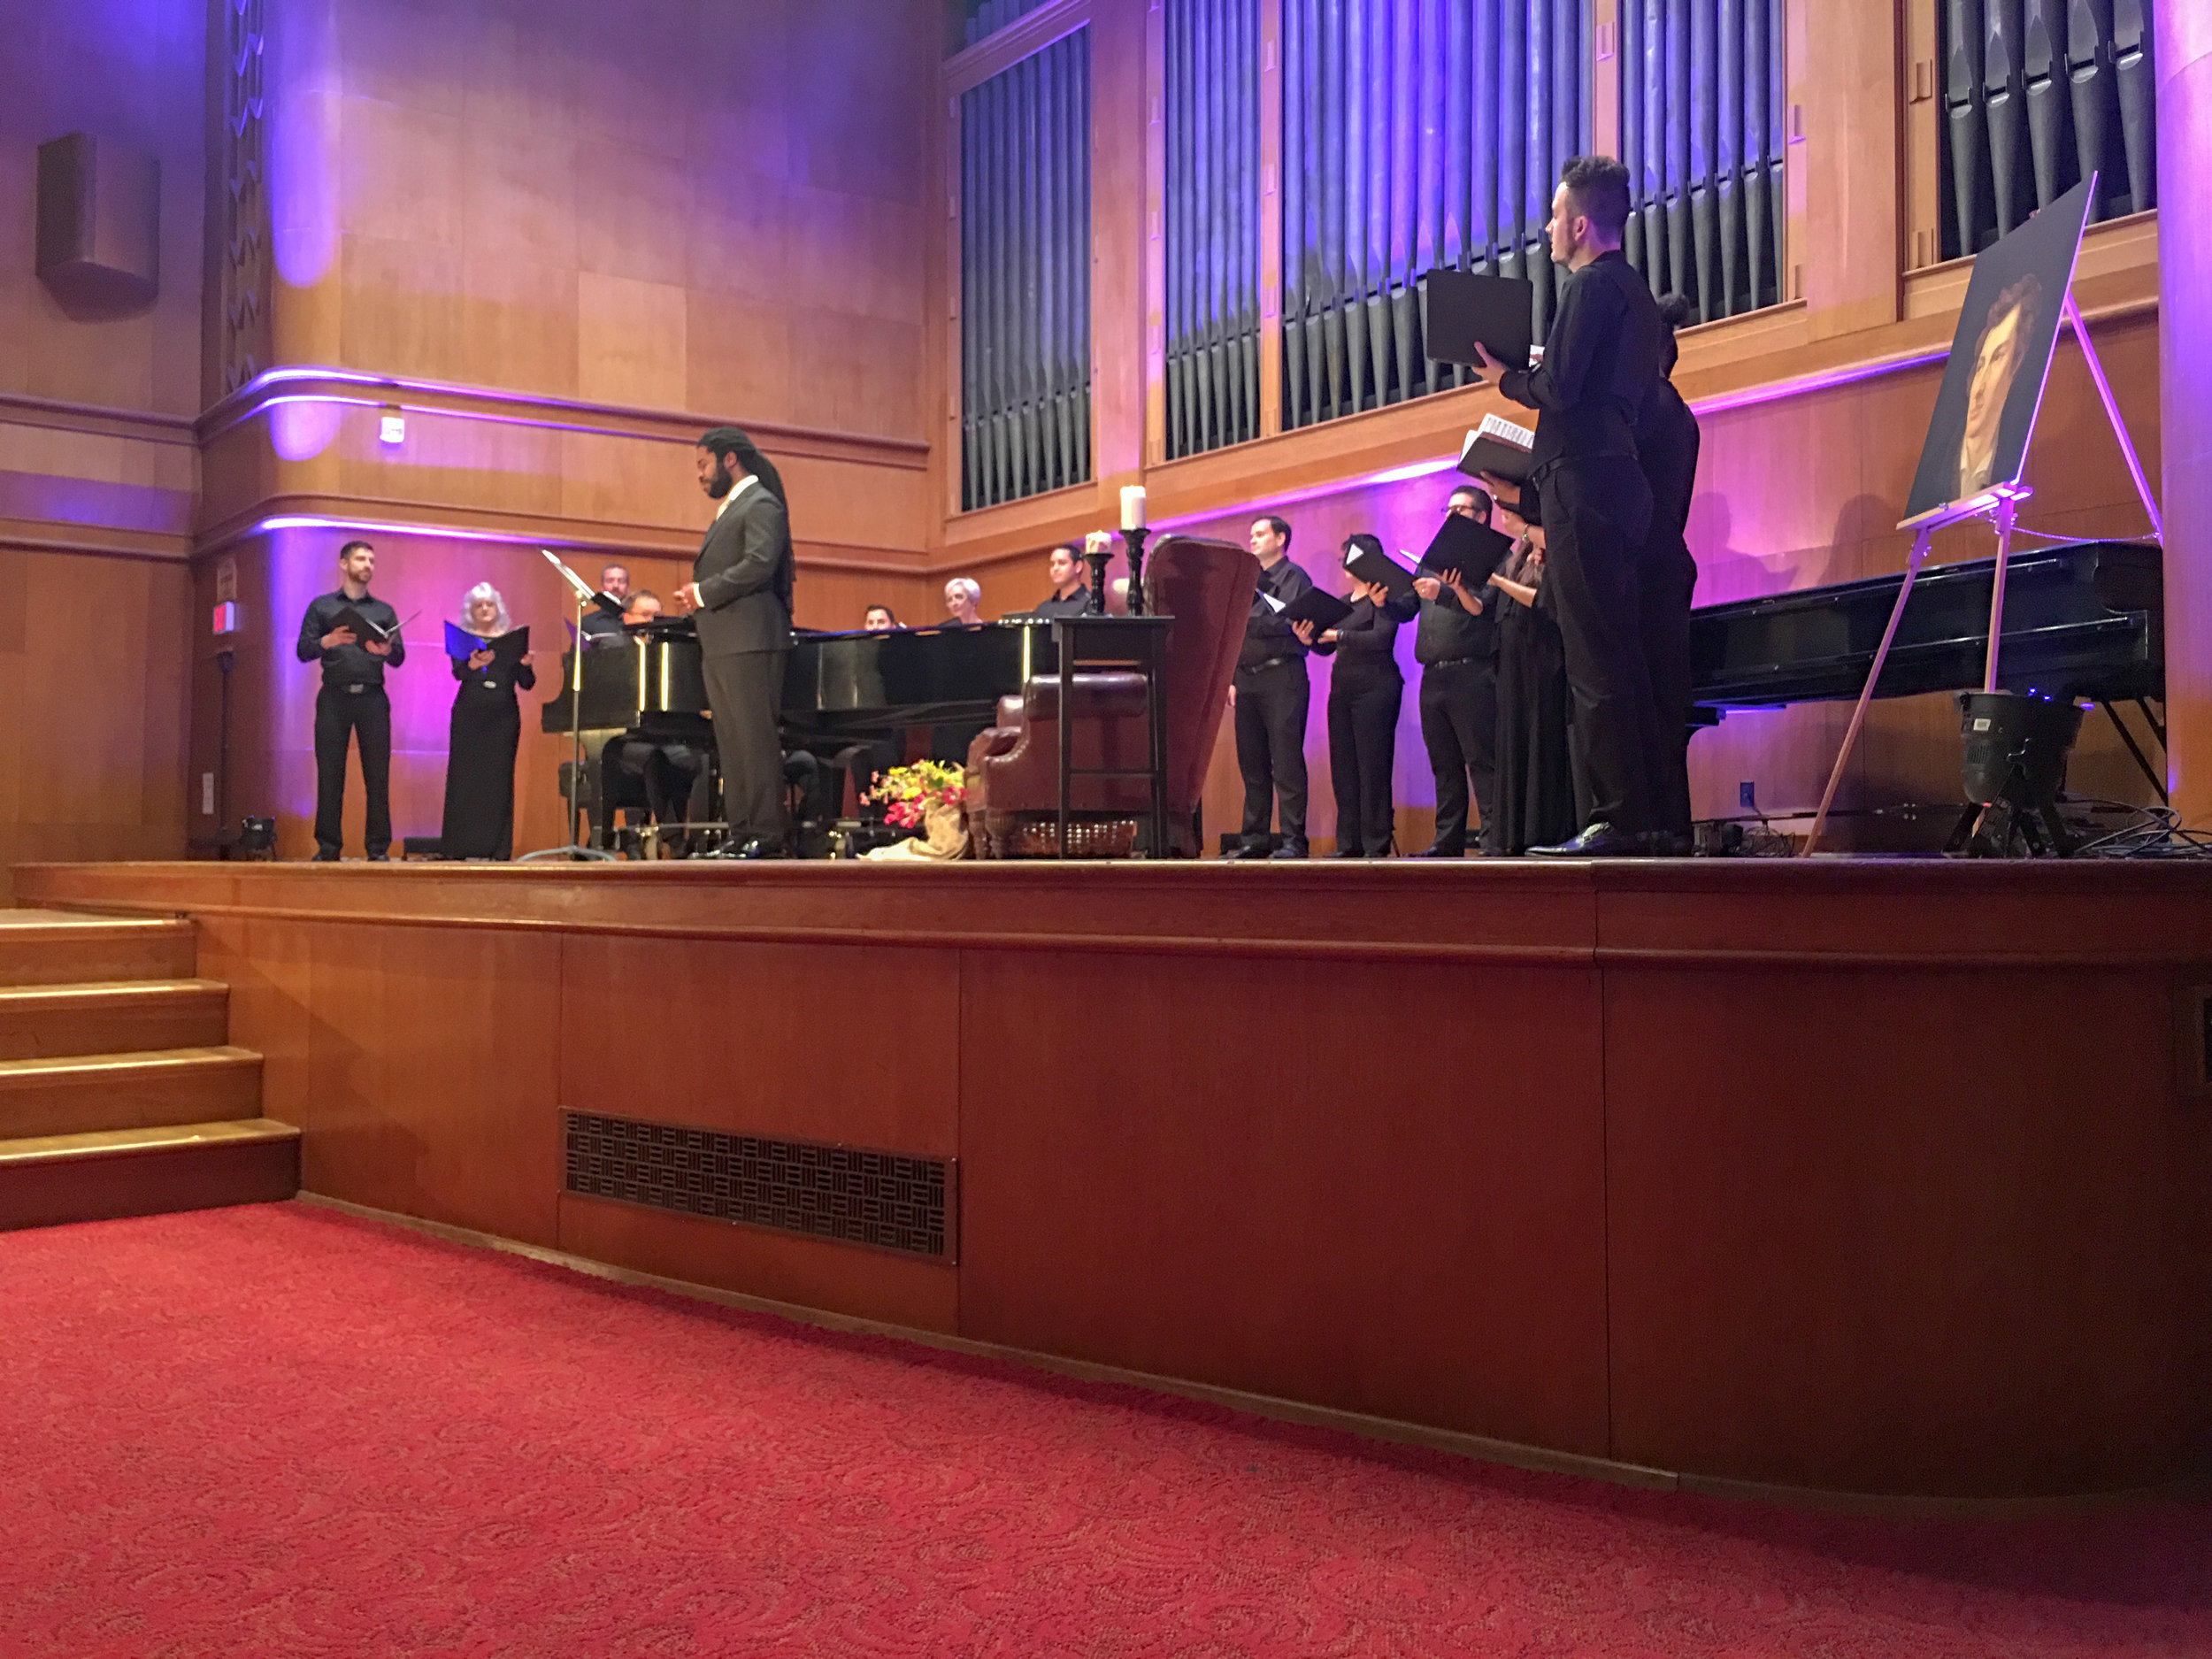 On the beautiful stage of Homer Rainey Hall at the University of Texas Austin, joined by members of the wonderful choir in which I sing, Conspirare.  A program of Schumann's  Dichterliebe , Vaughan Williams  Mystical Songs  (pictured), and black spirituals, among other works.